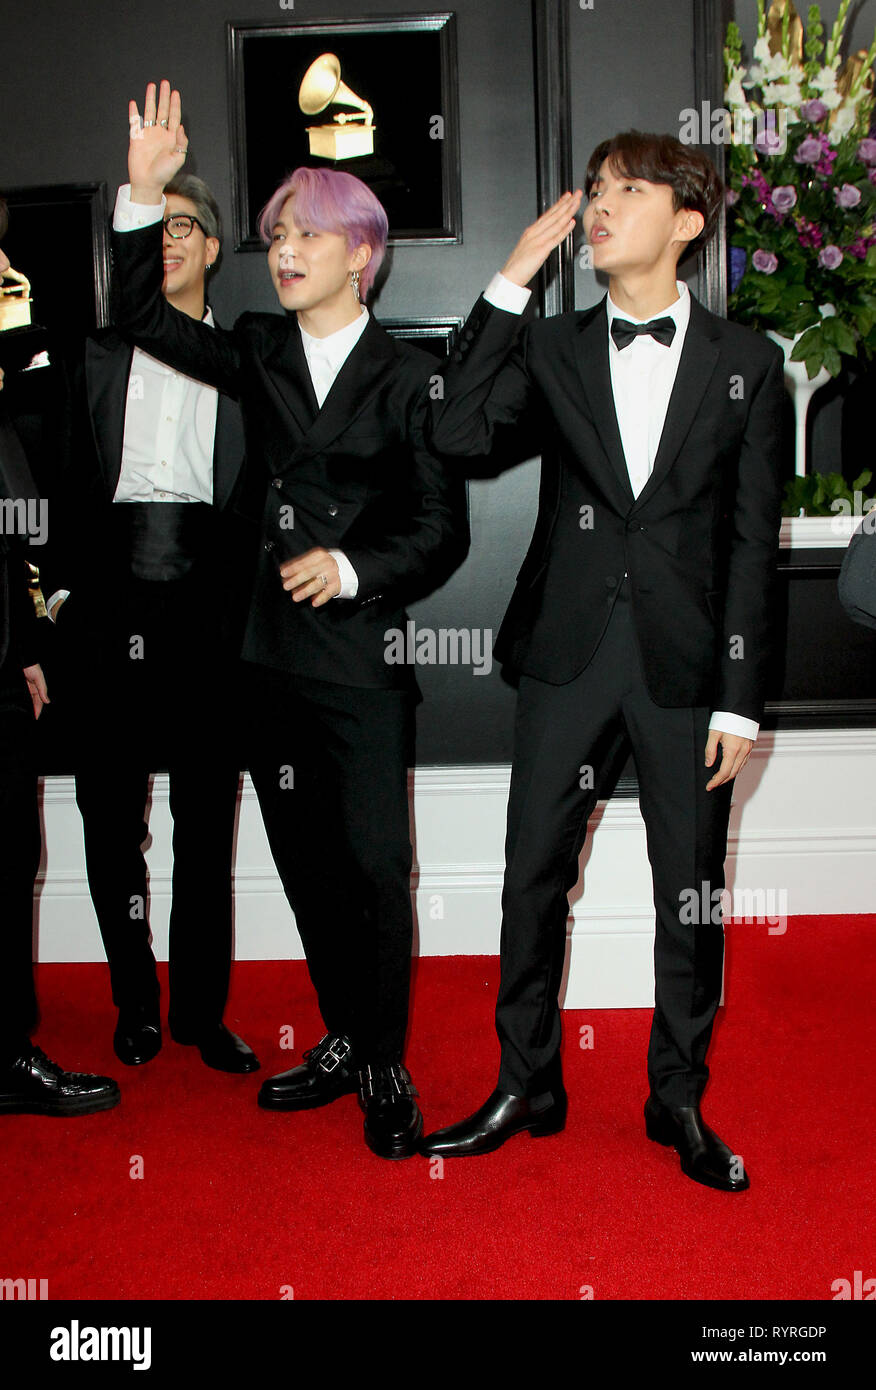 61st annual grammy awards 2019 arrivals held at the staples center in los angeles california featuring rm jimin j hope of korean boy band bts where los angeles california united states when 10 alamy